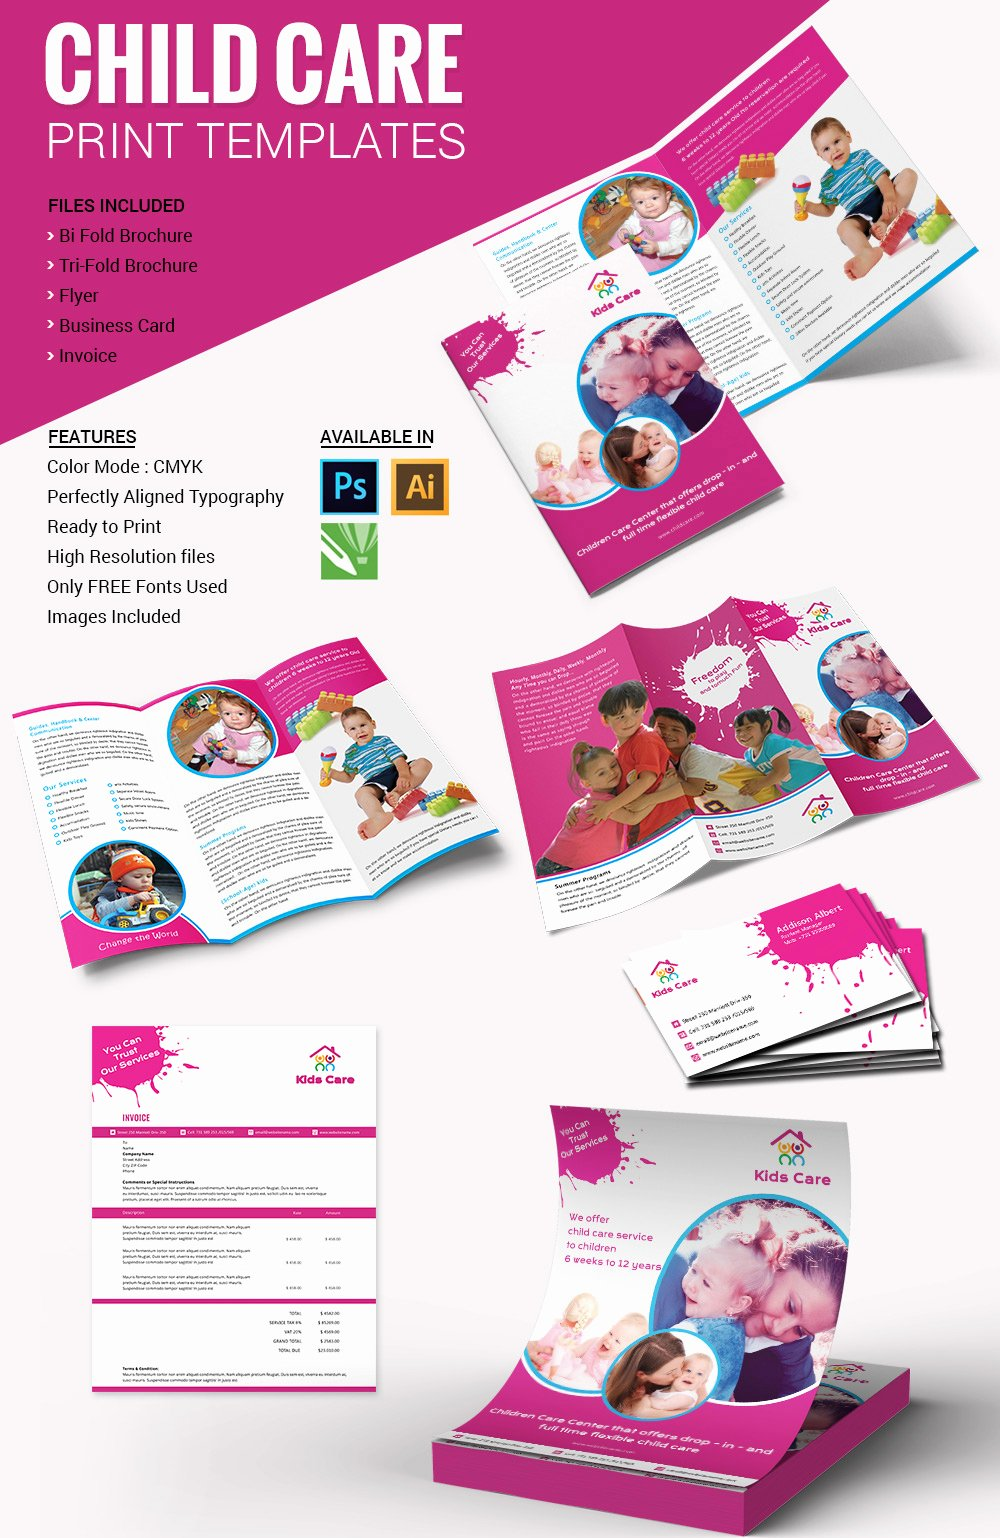 Child Care Flyer Templates Inspirational 10 Beautiful Child Care Brochure Templates